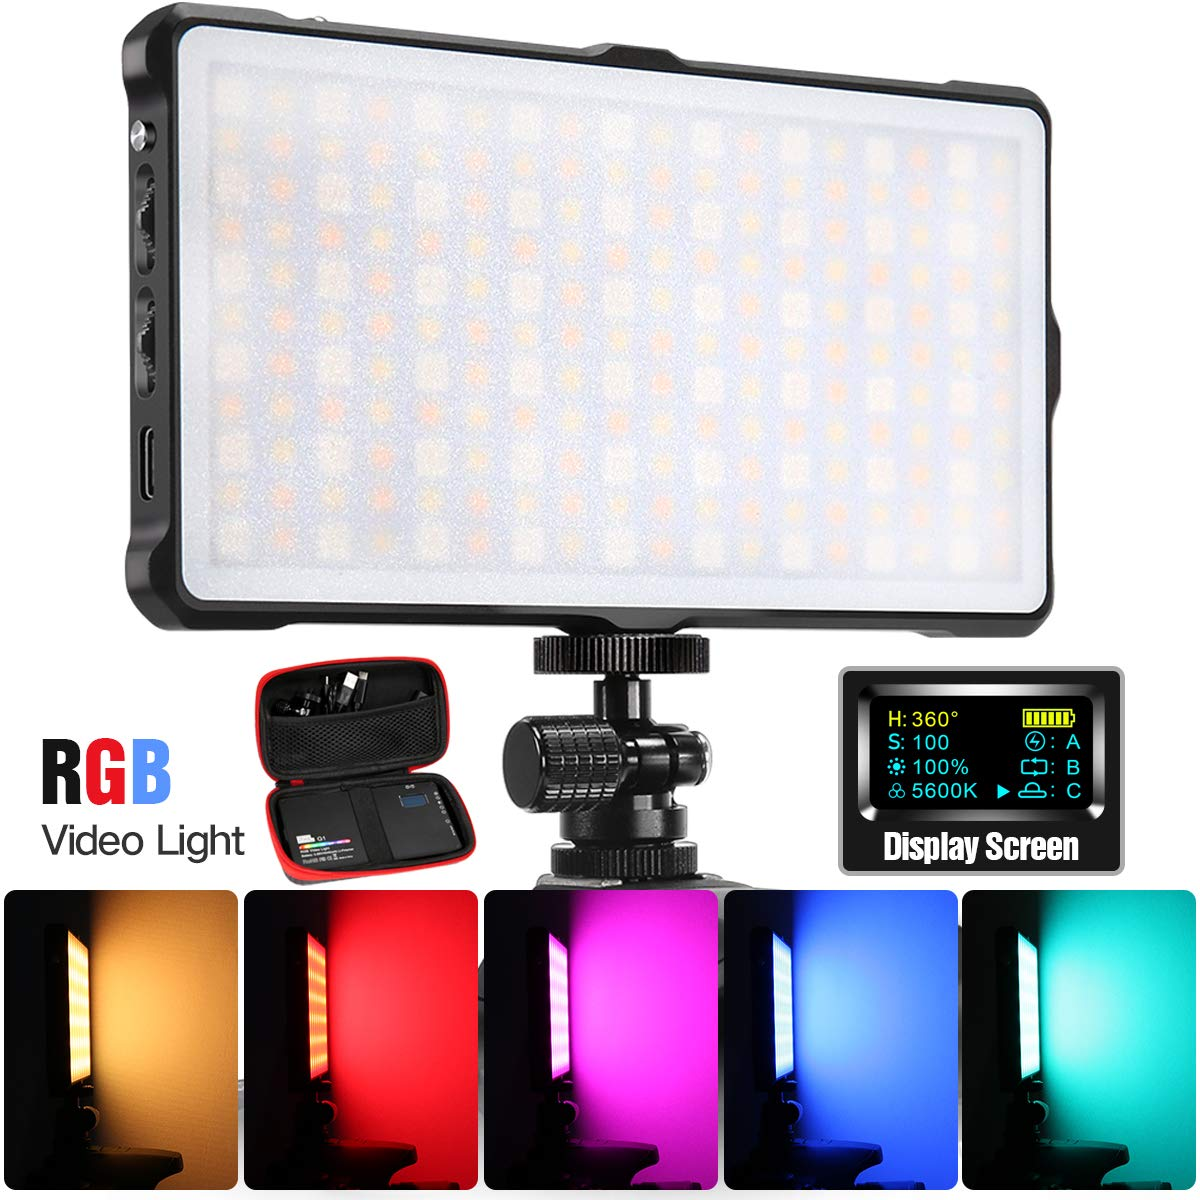 Pixel RGB LED Video Light,Full Color Rechargeable Pocket Sized On-Camera Video Light with Bi-Color 3200k-5600k and 9 Applicable Situations, 360° Adjustable Support System by PIXEL